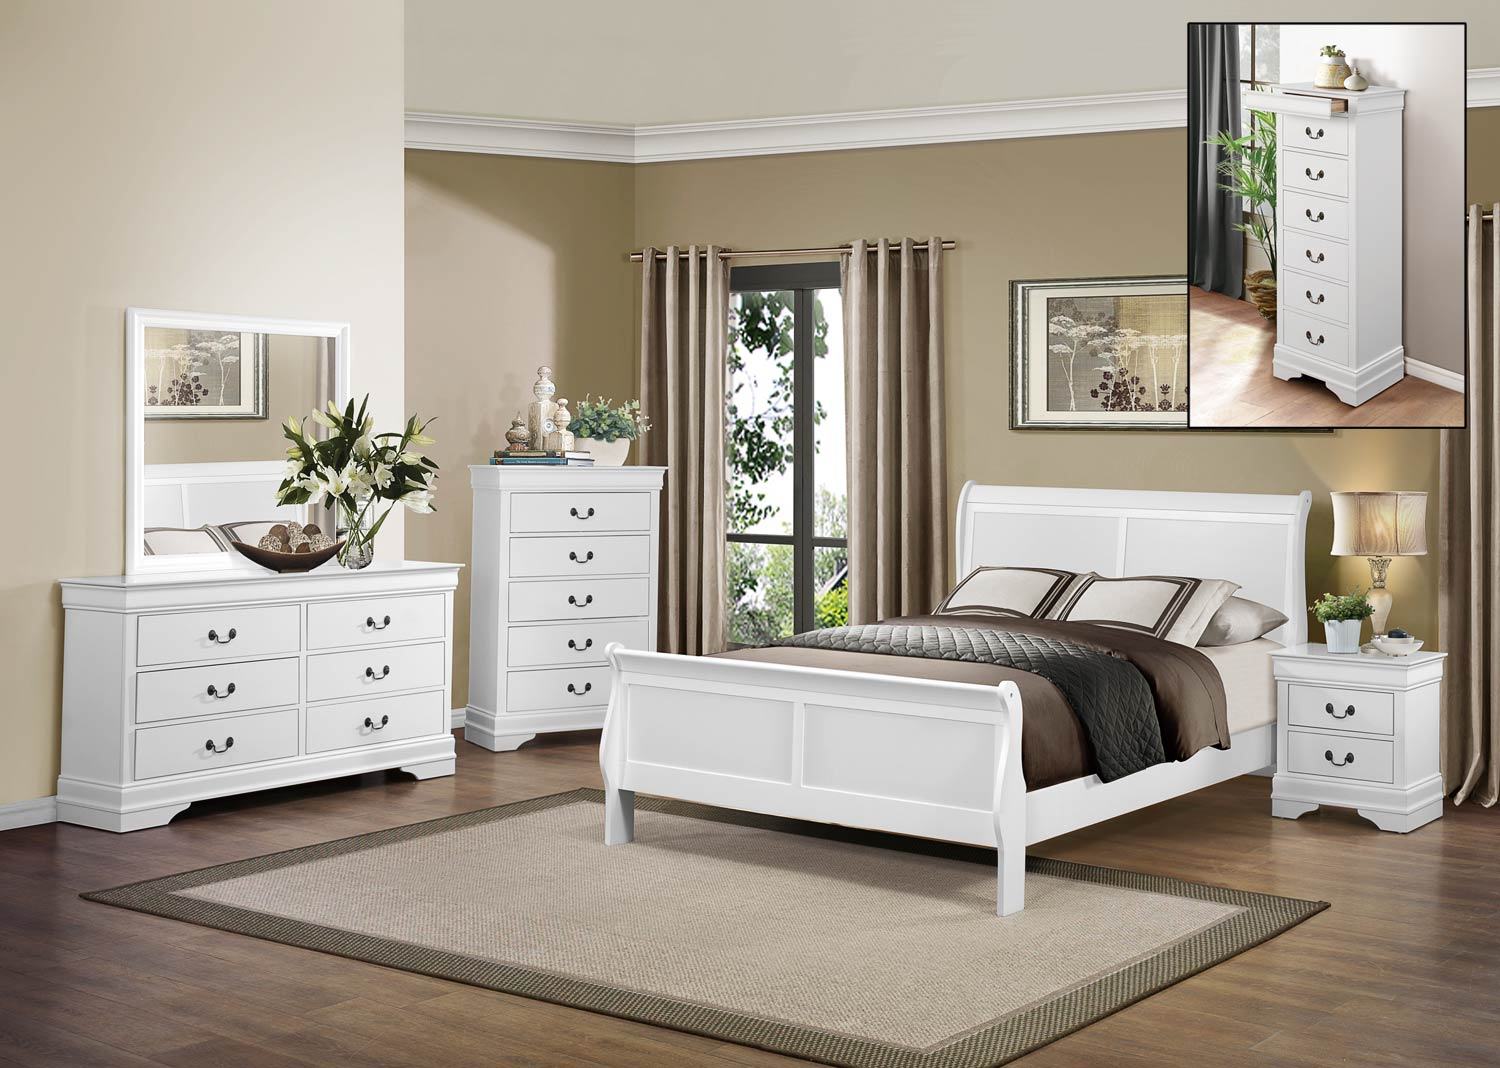 Homelegance Mayville Bedroom Set - White